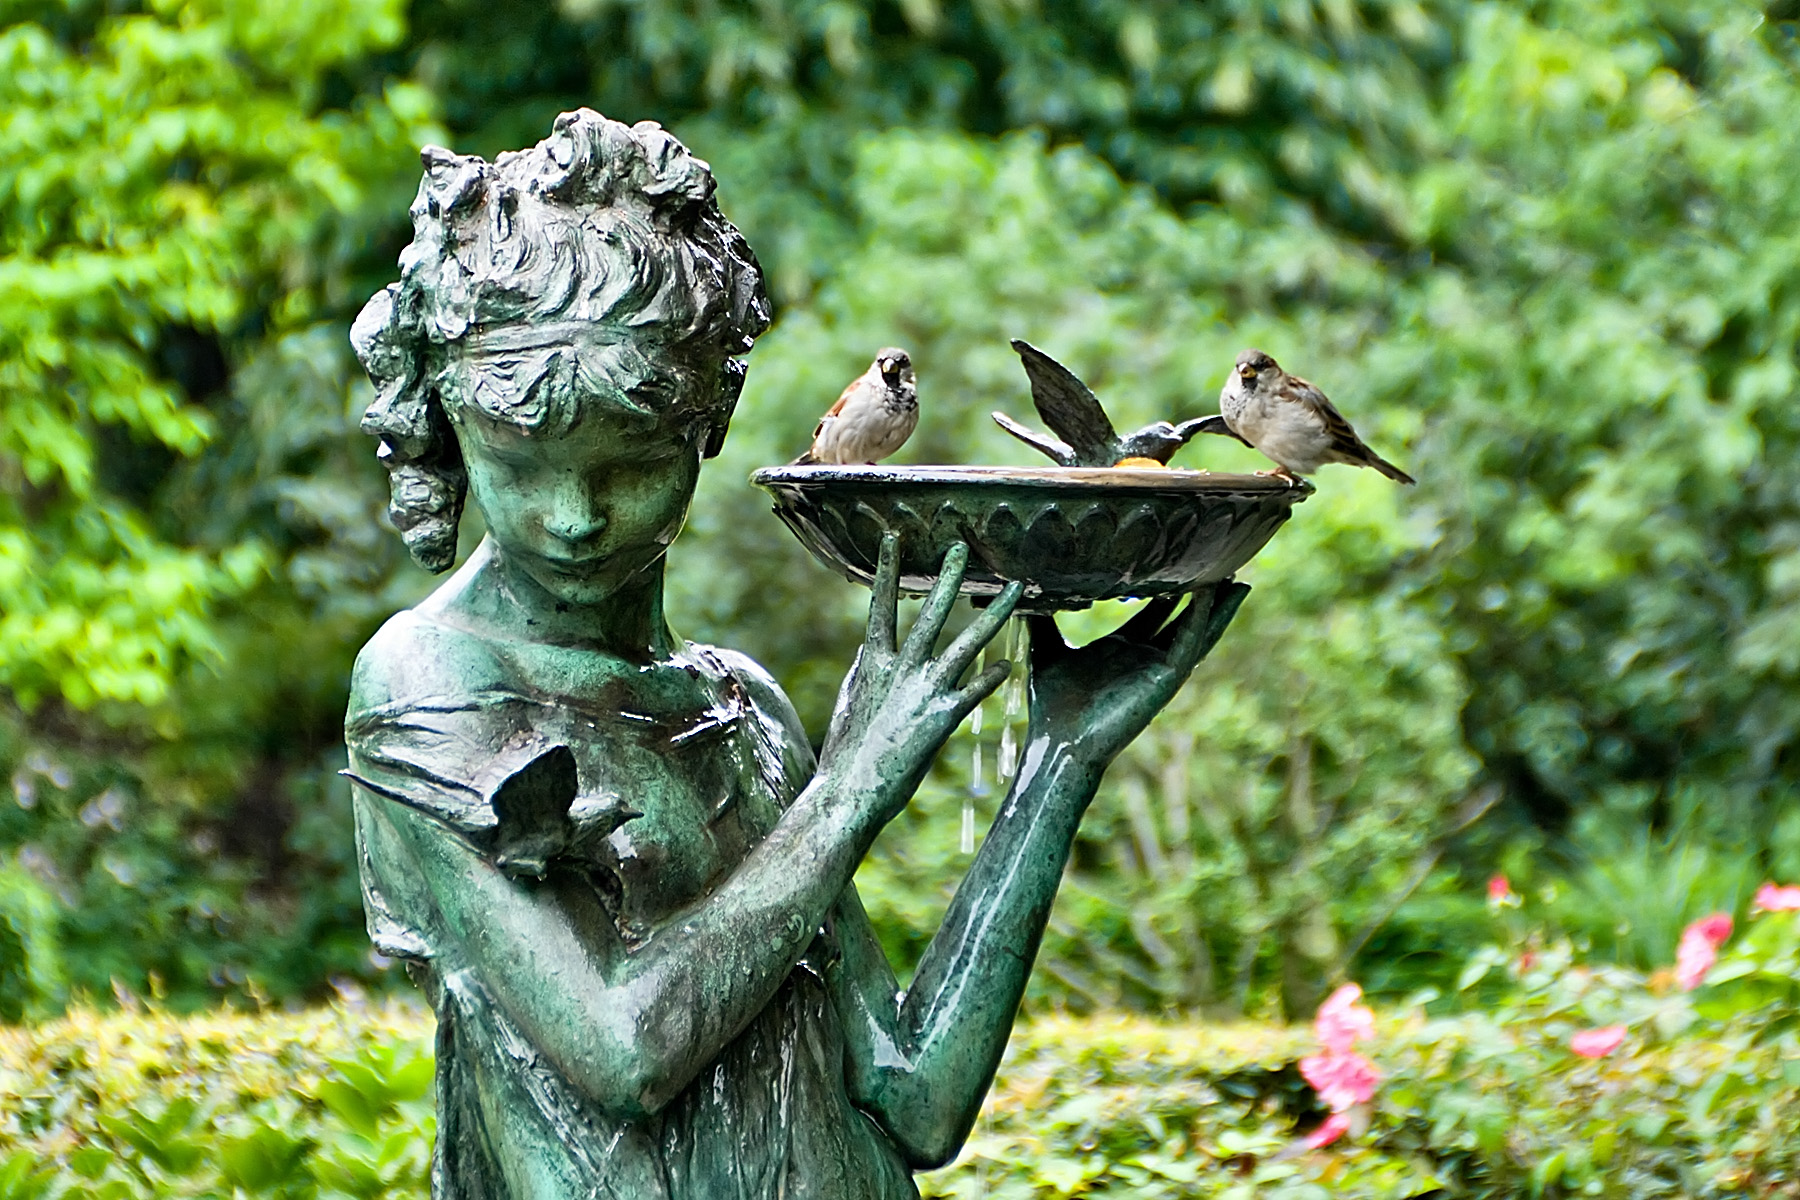 Statues For The Garden How To Use Statues And Sculptures To Make Your Garden